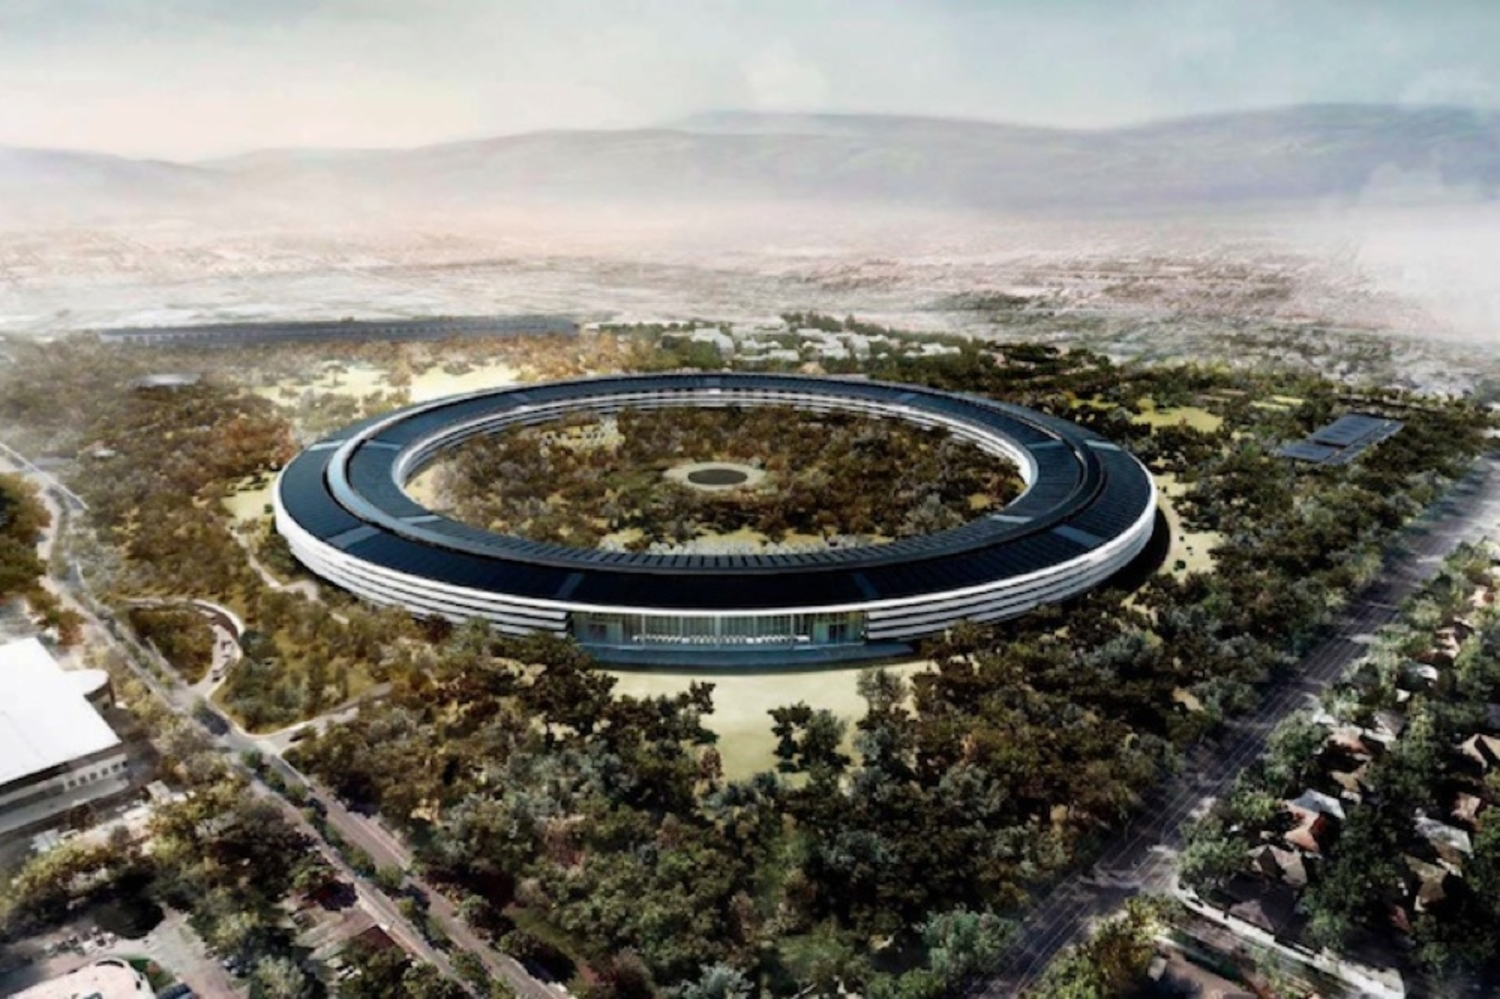 This Is What Apple's Spaceship Looks Like